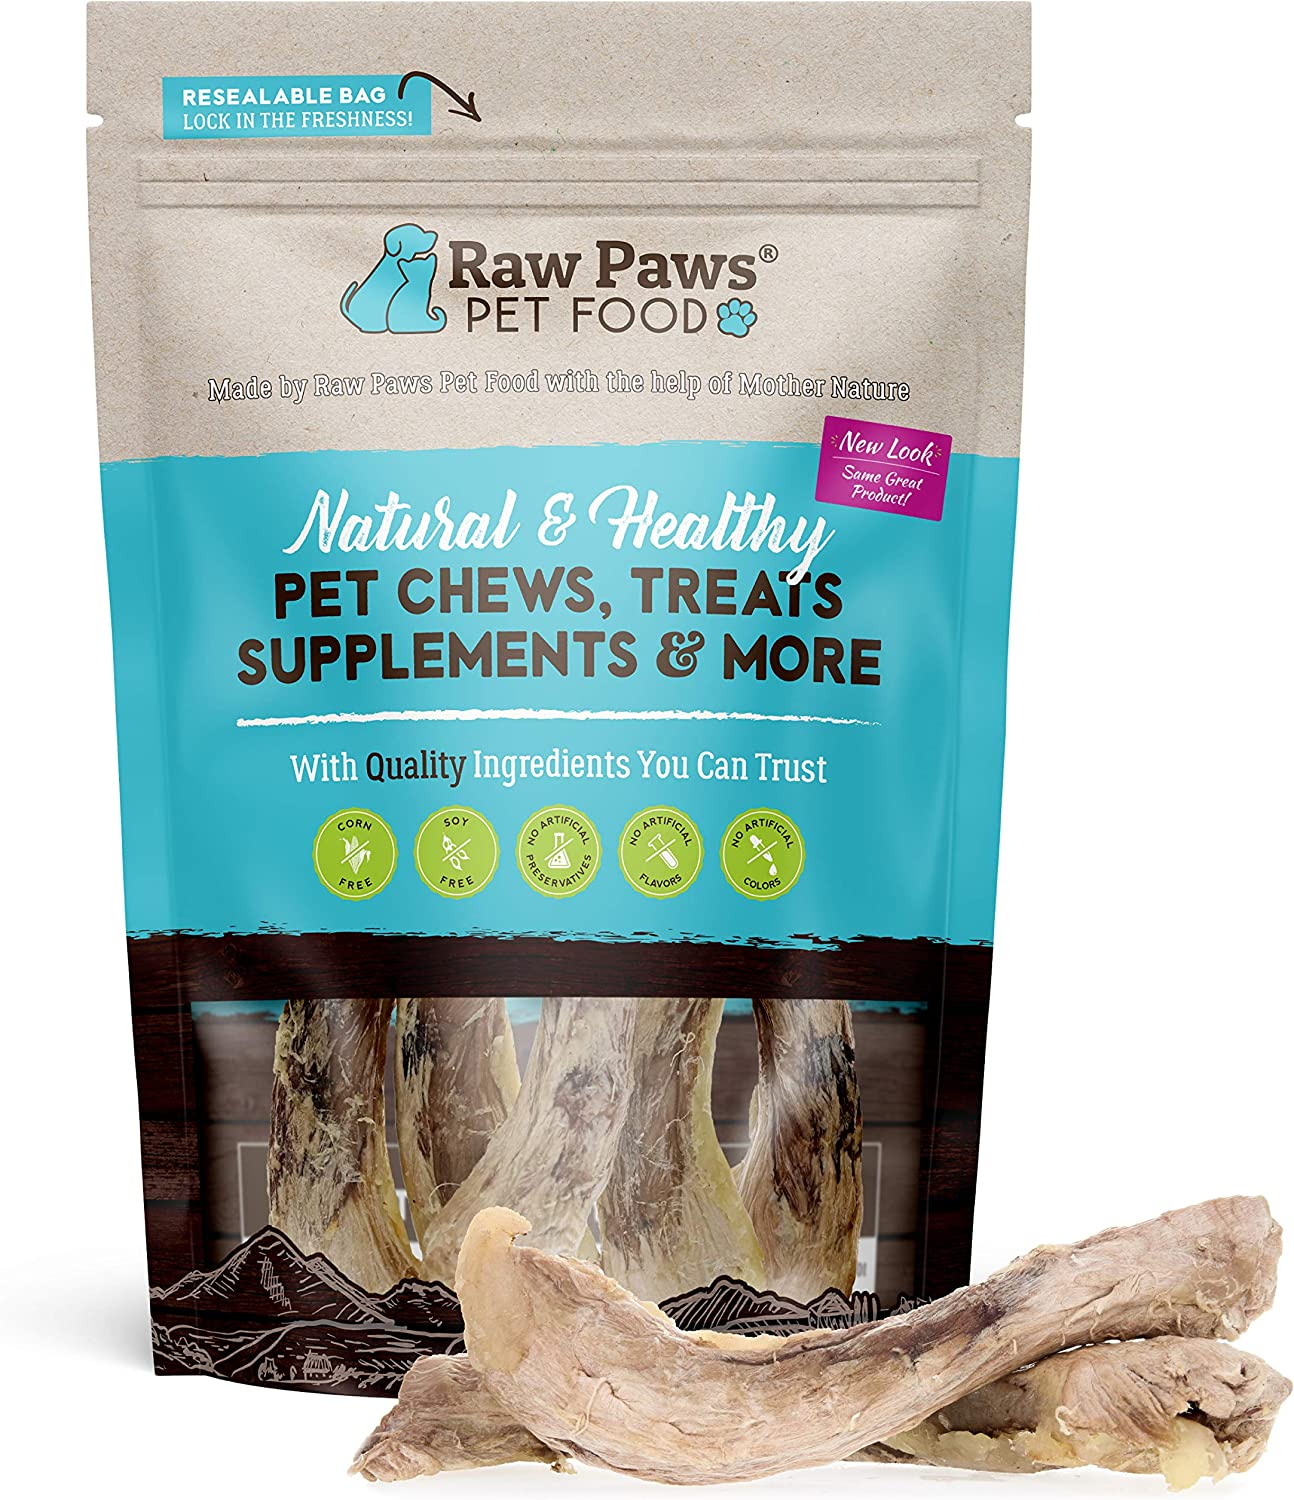 Raw Paws Freeze Dried Duck Necks for Dogs - All Natural Duck Dog Treats Made in USA Only - Human-Grade, Single Ingredient Duck Neck Dog Treat - Raw Freeze Dried Dog Treats